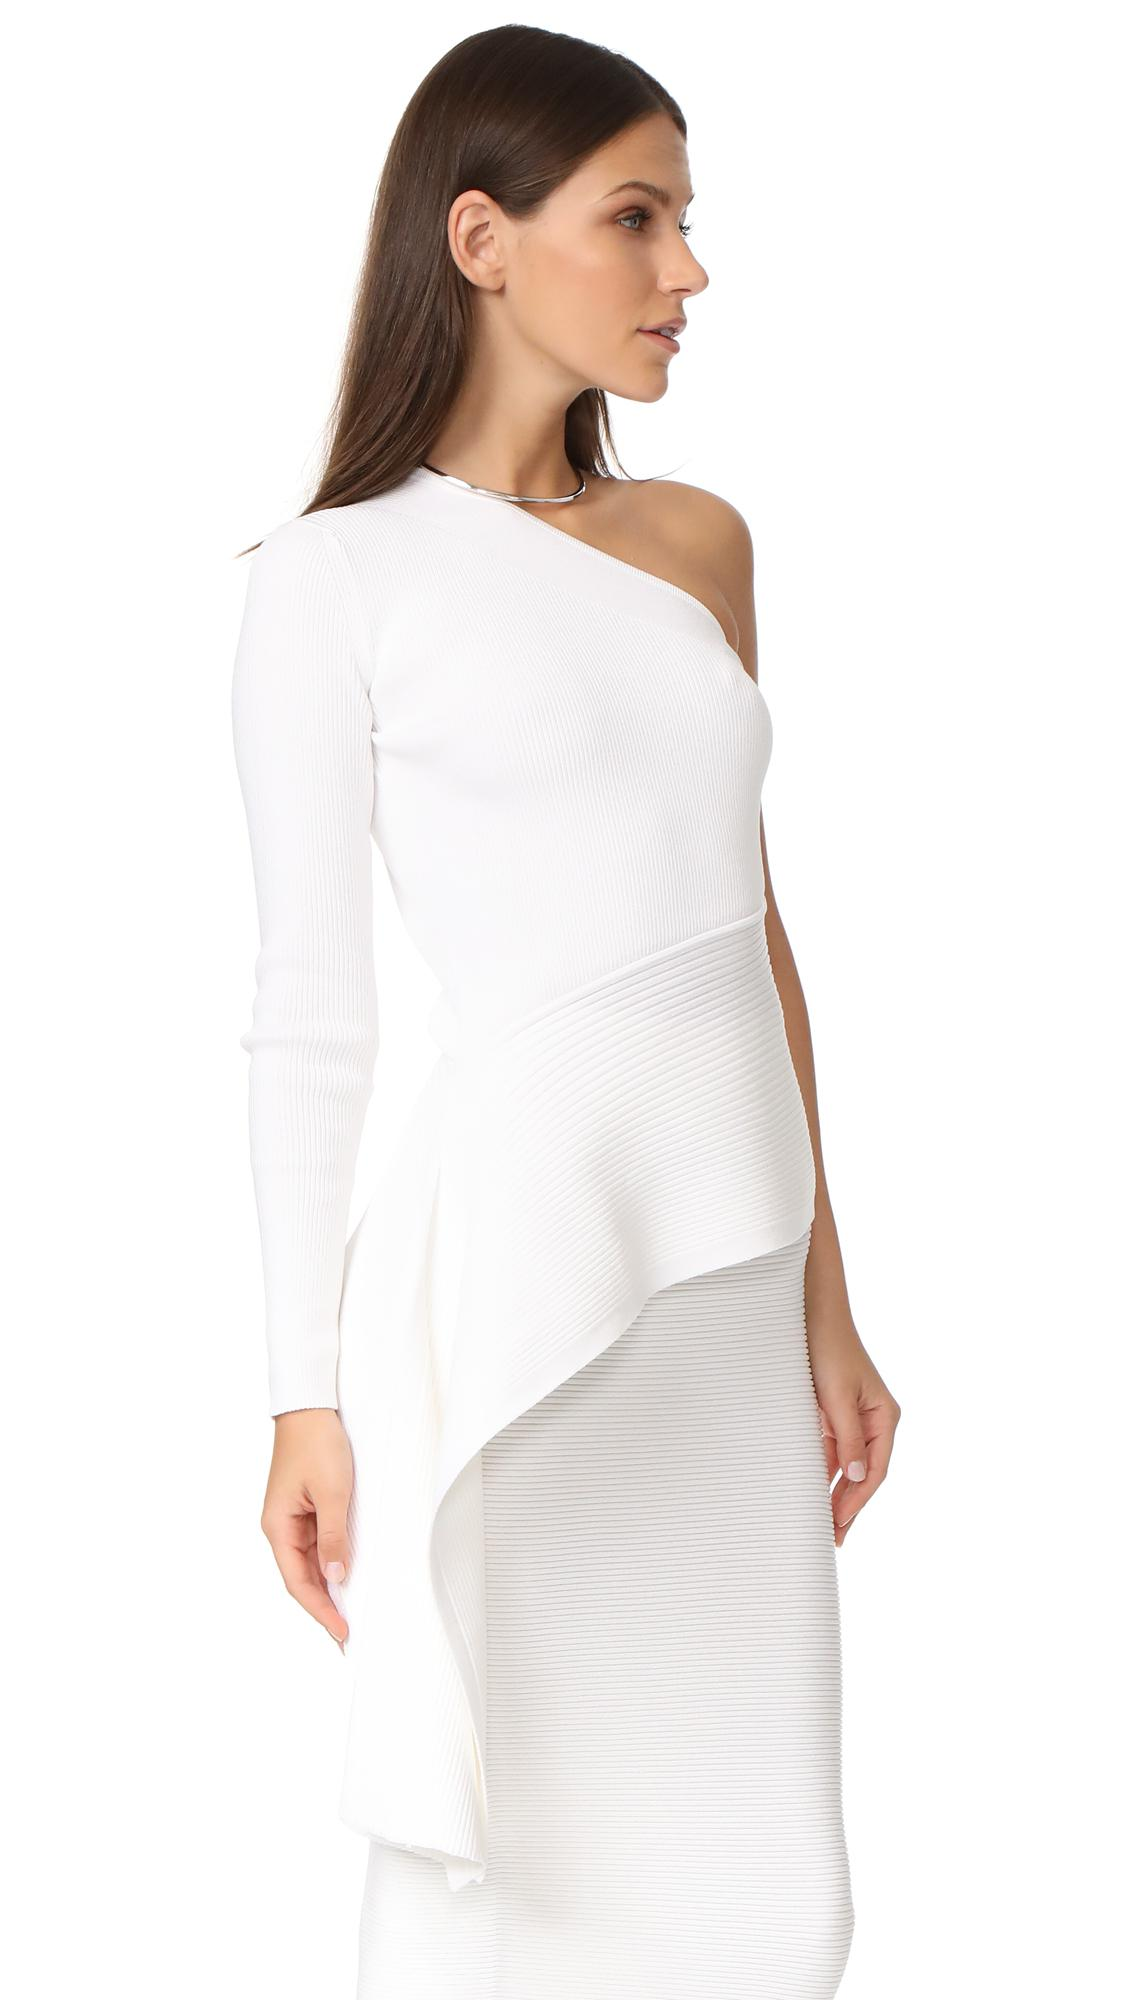 e62a25cf308 Cushnie et Ochs Ls One Shoulder Top in White - Lyst